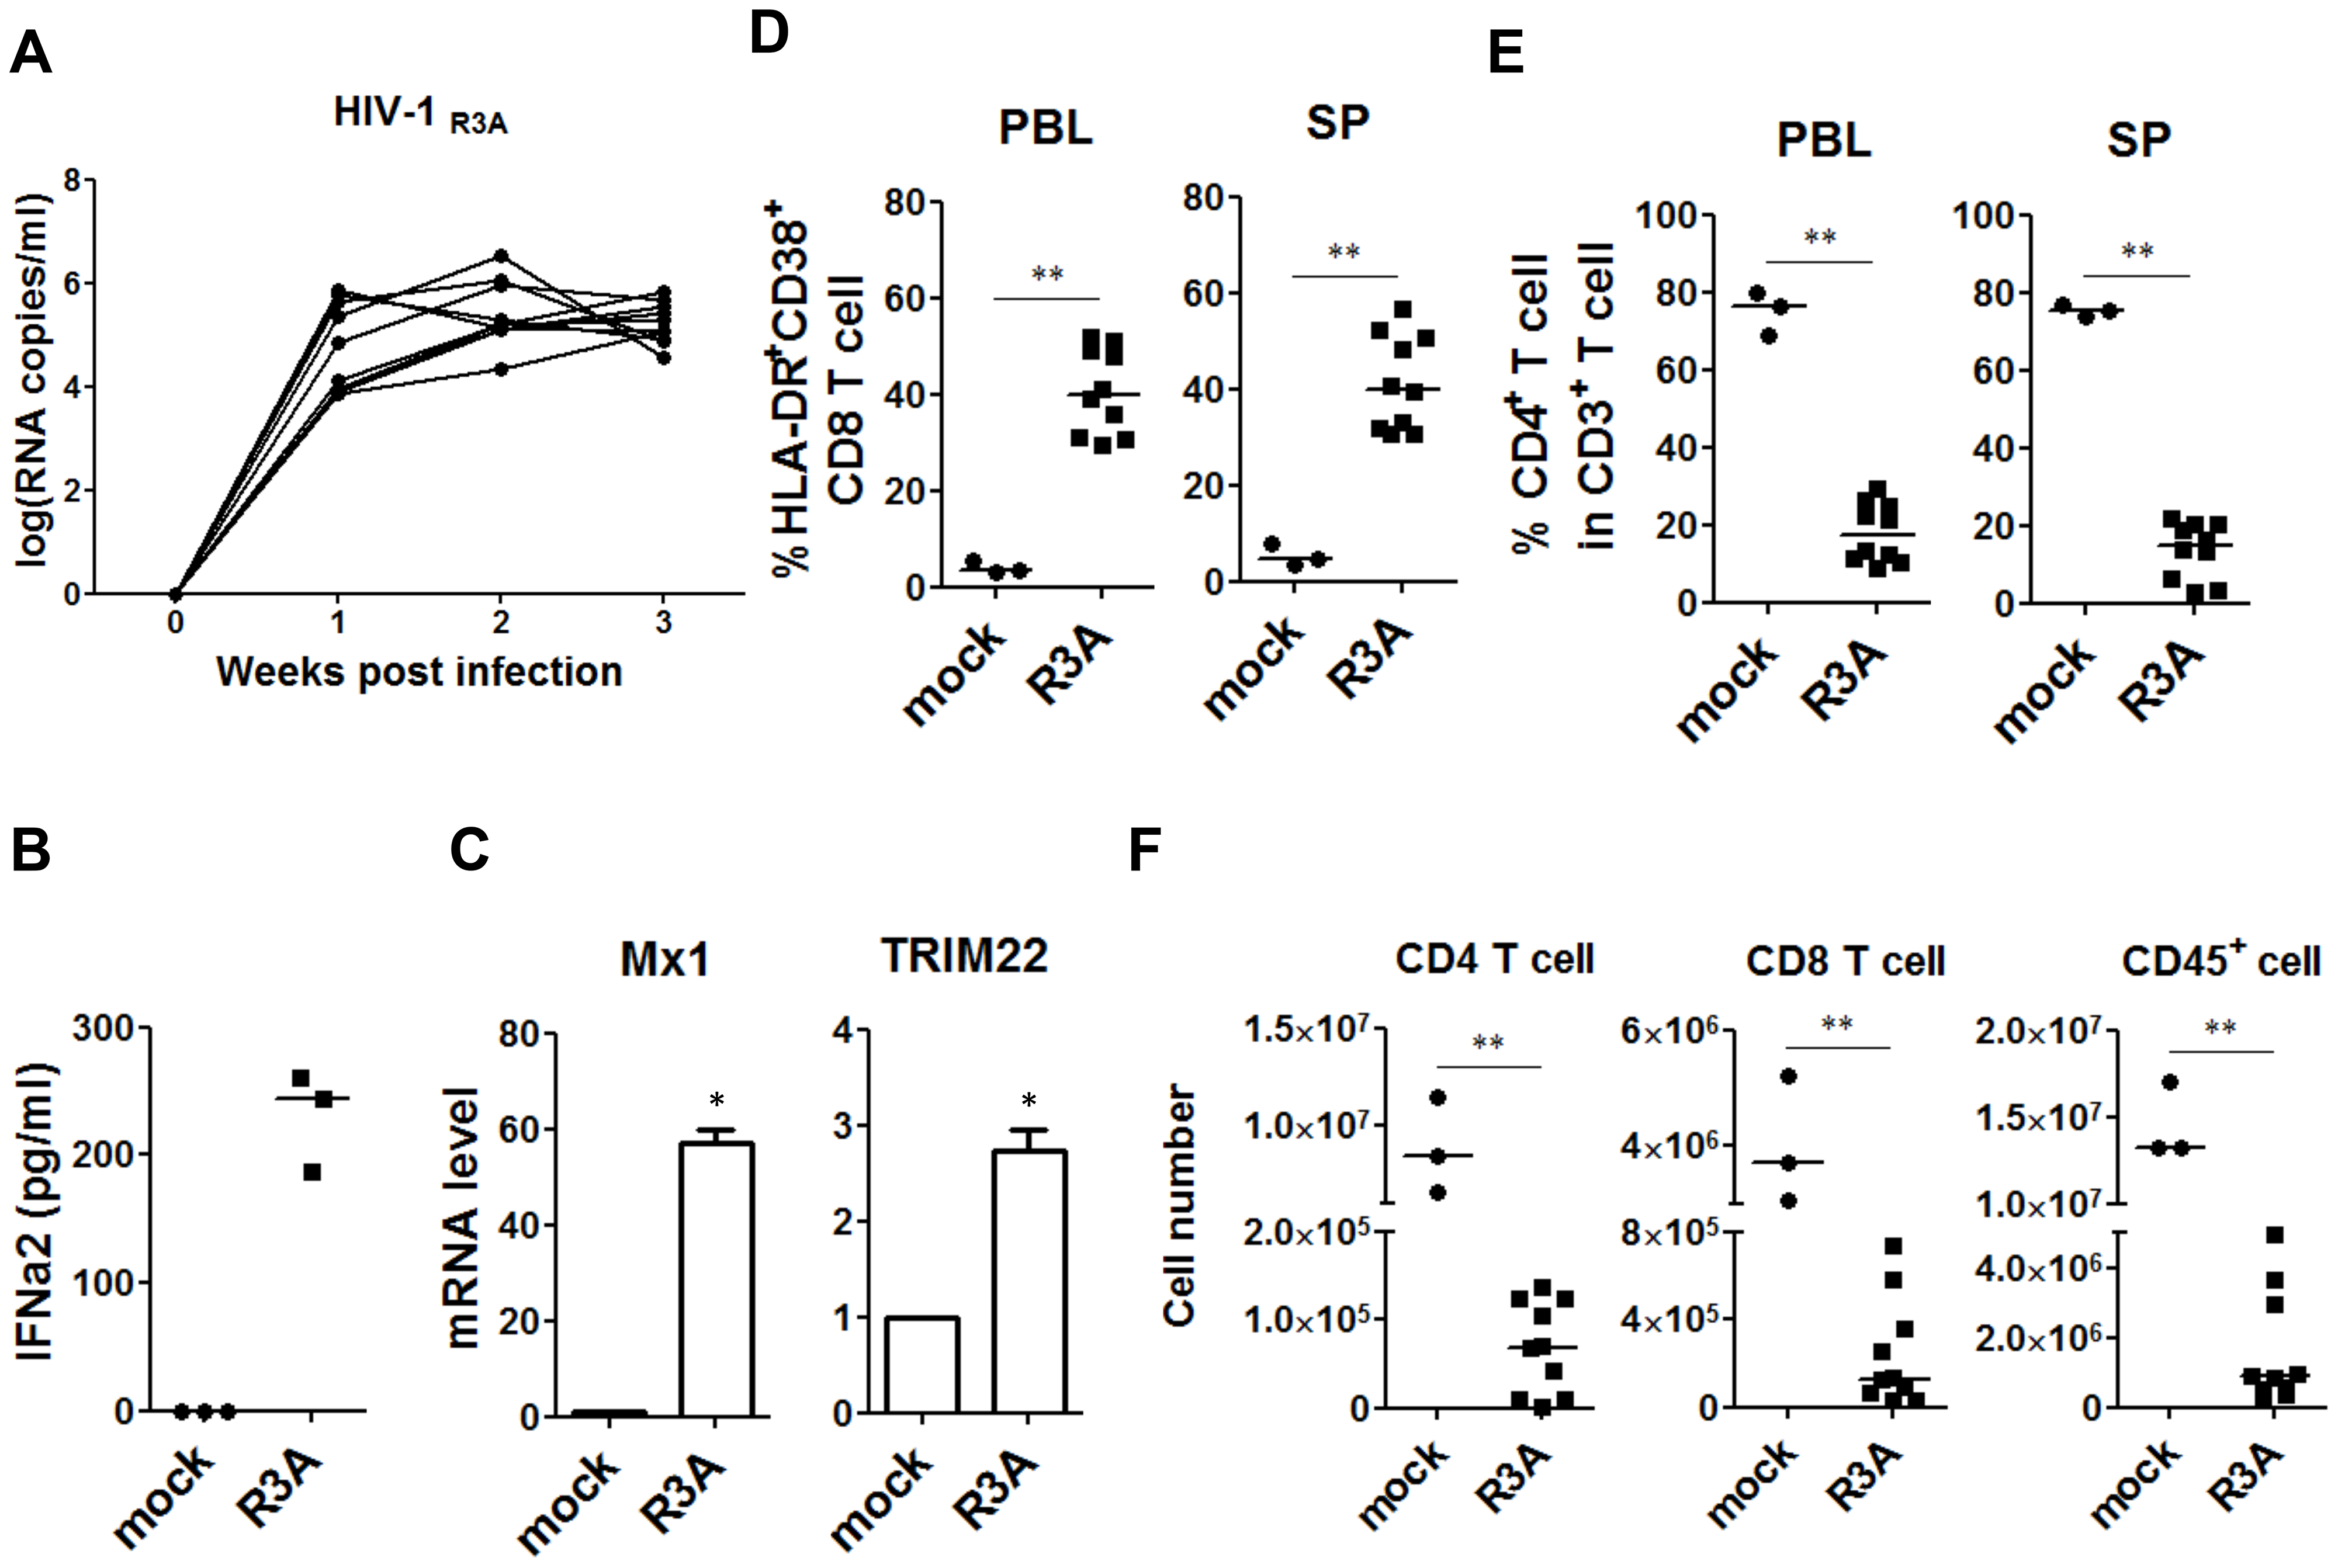 HIV-1 replication and pathogenesis in HIV-1-infected humanized mice.